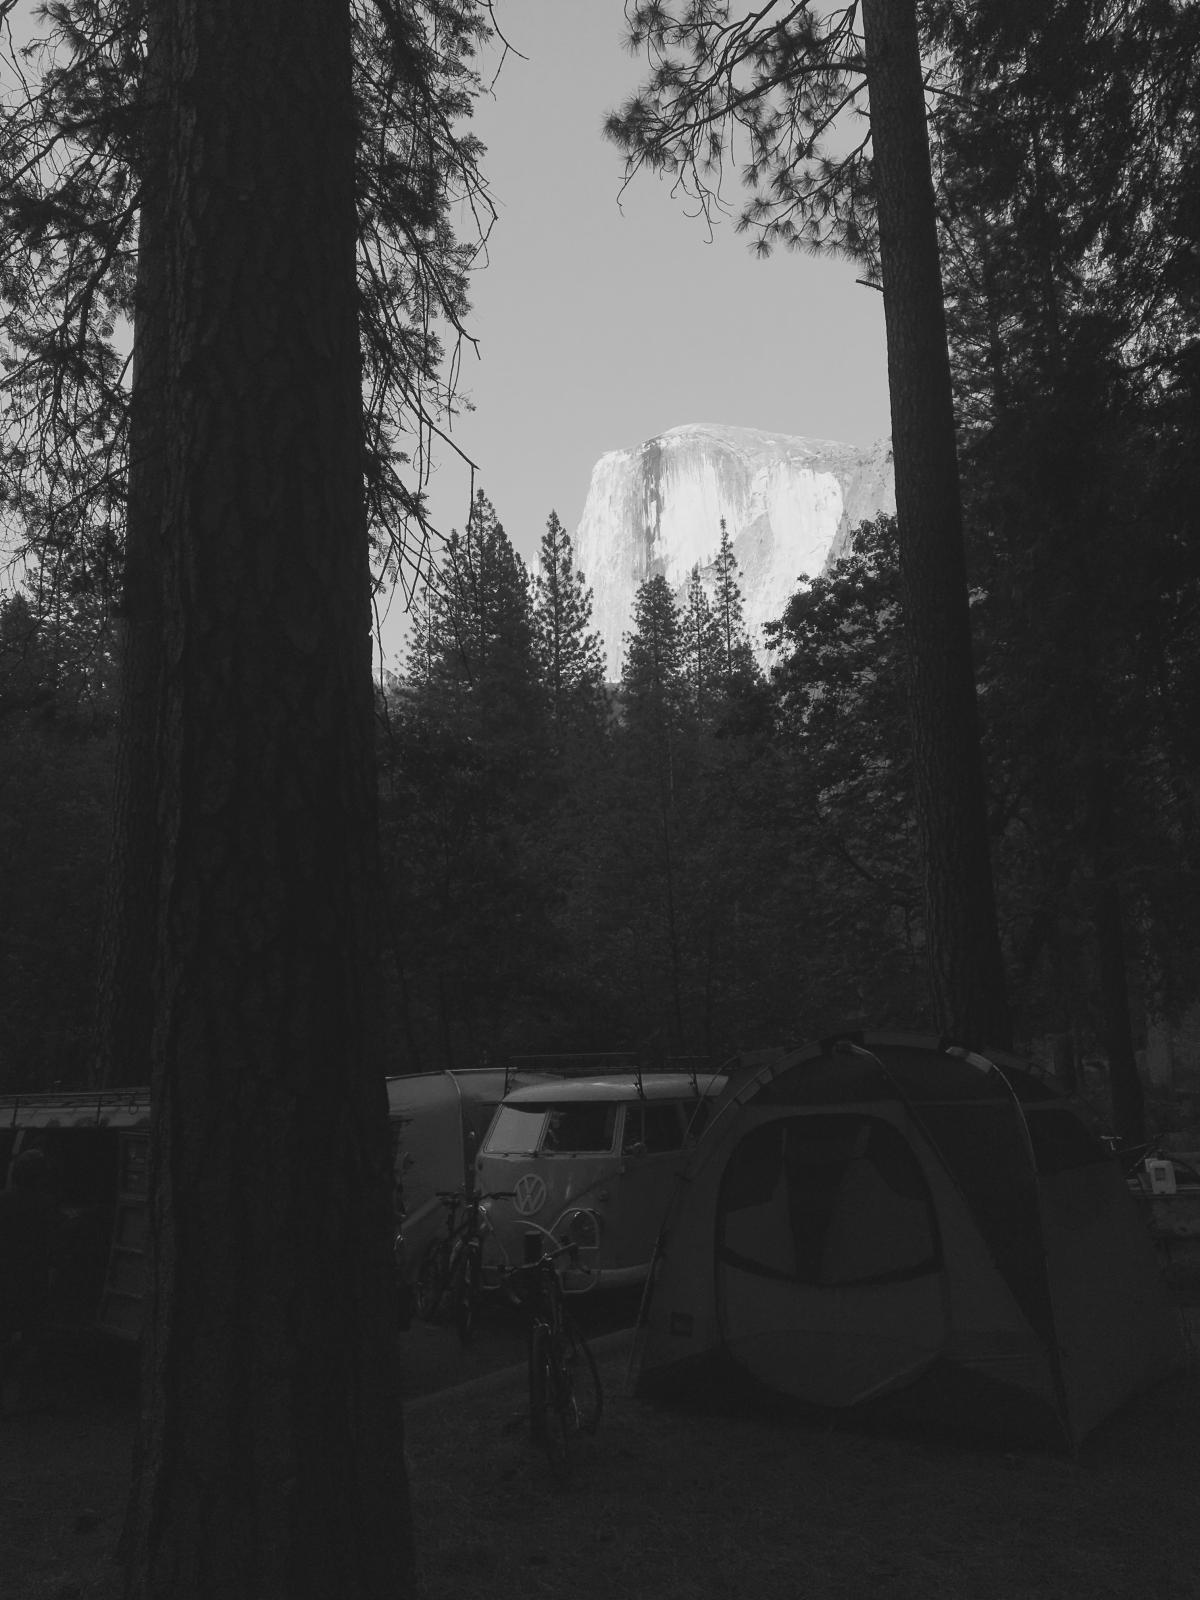 Bass lake / Yosemite 2016